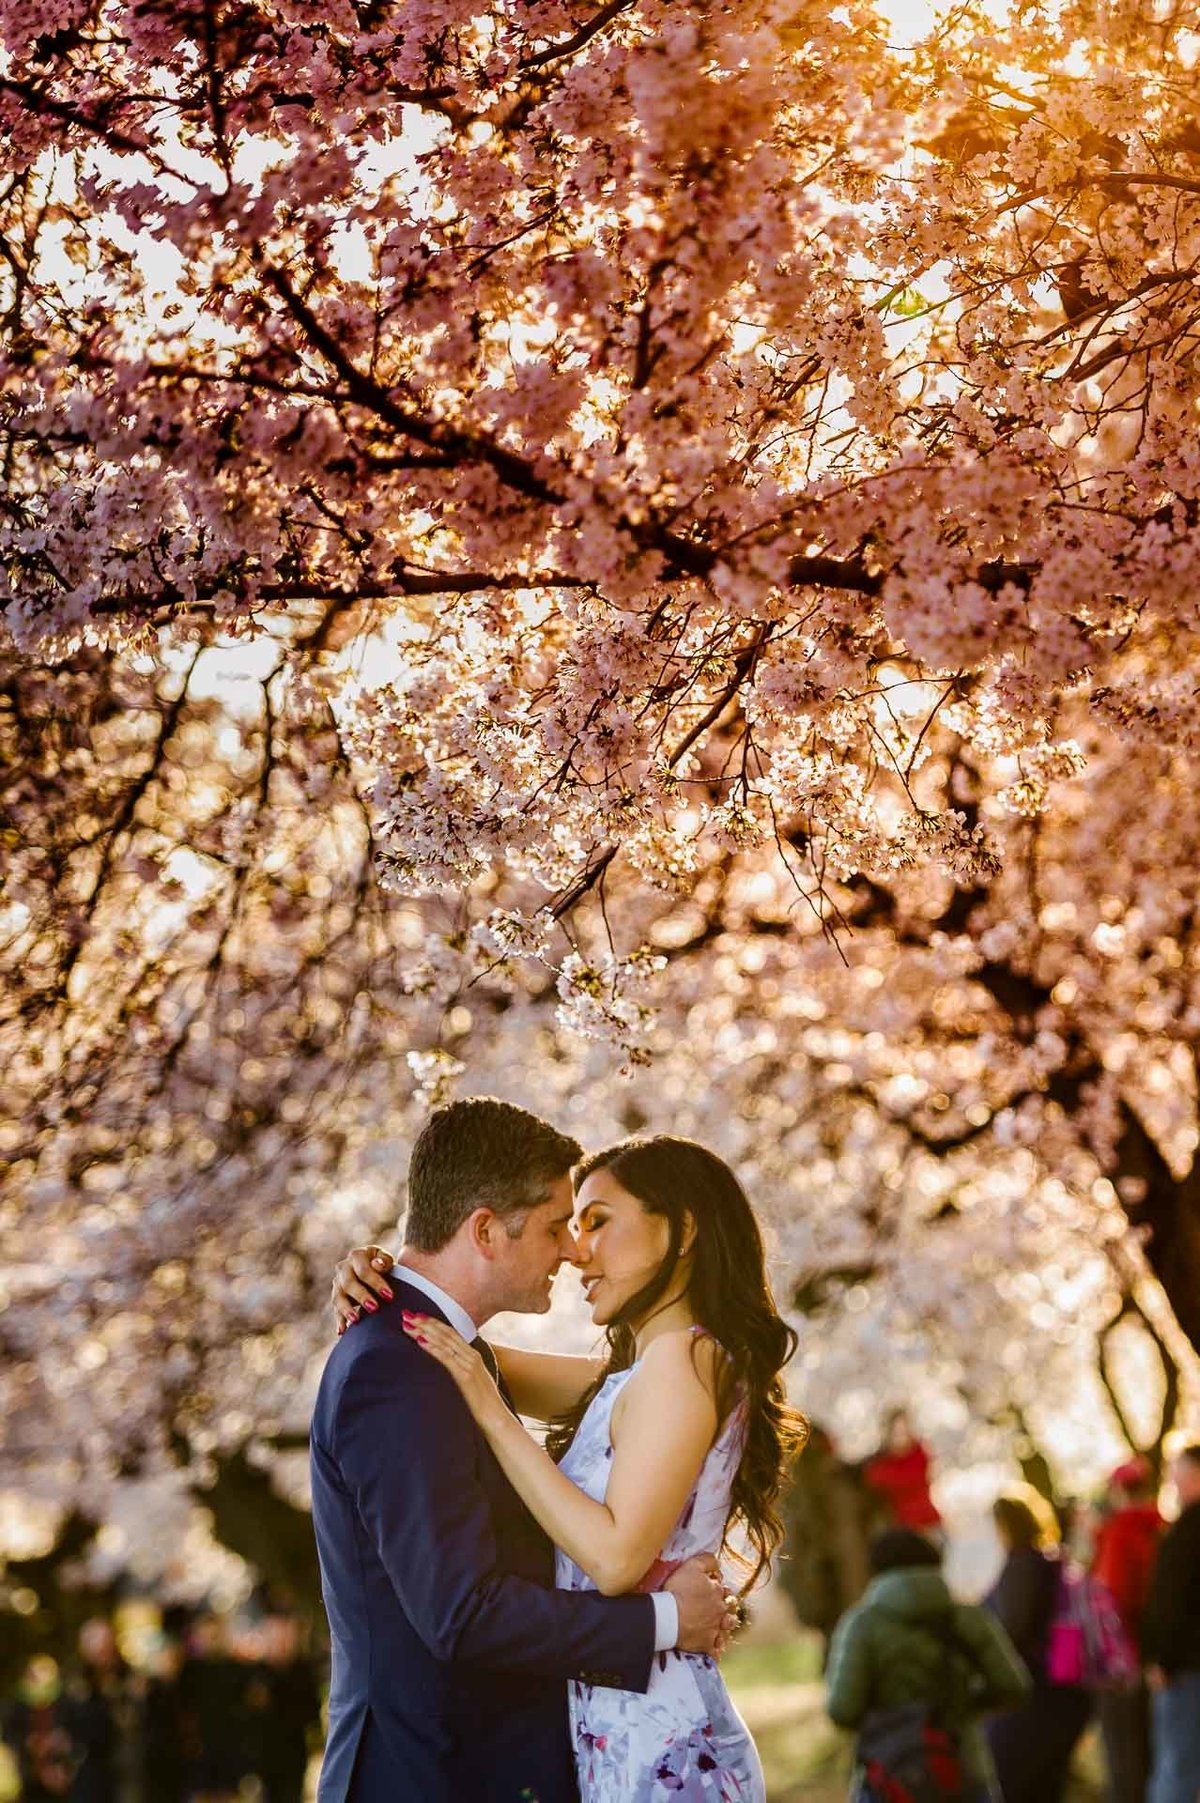 engagement photo with cherry blossoms in washington dc by stephane lemaire photography